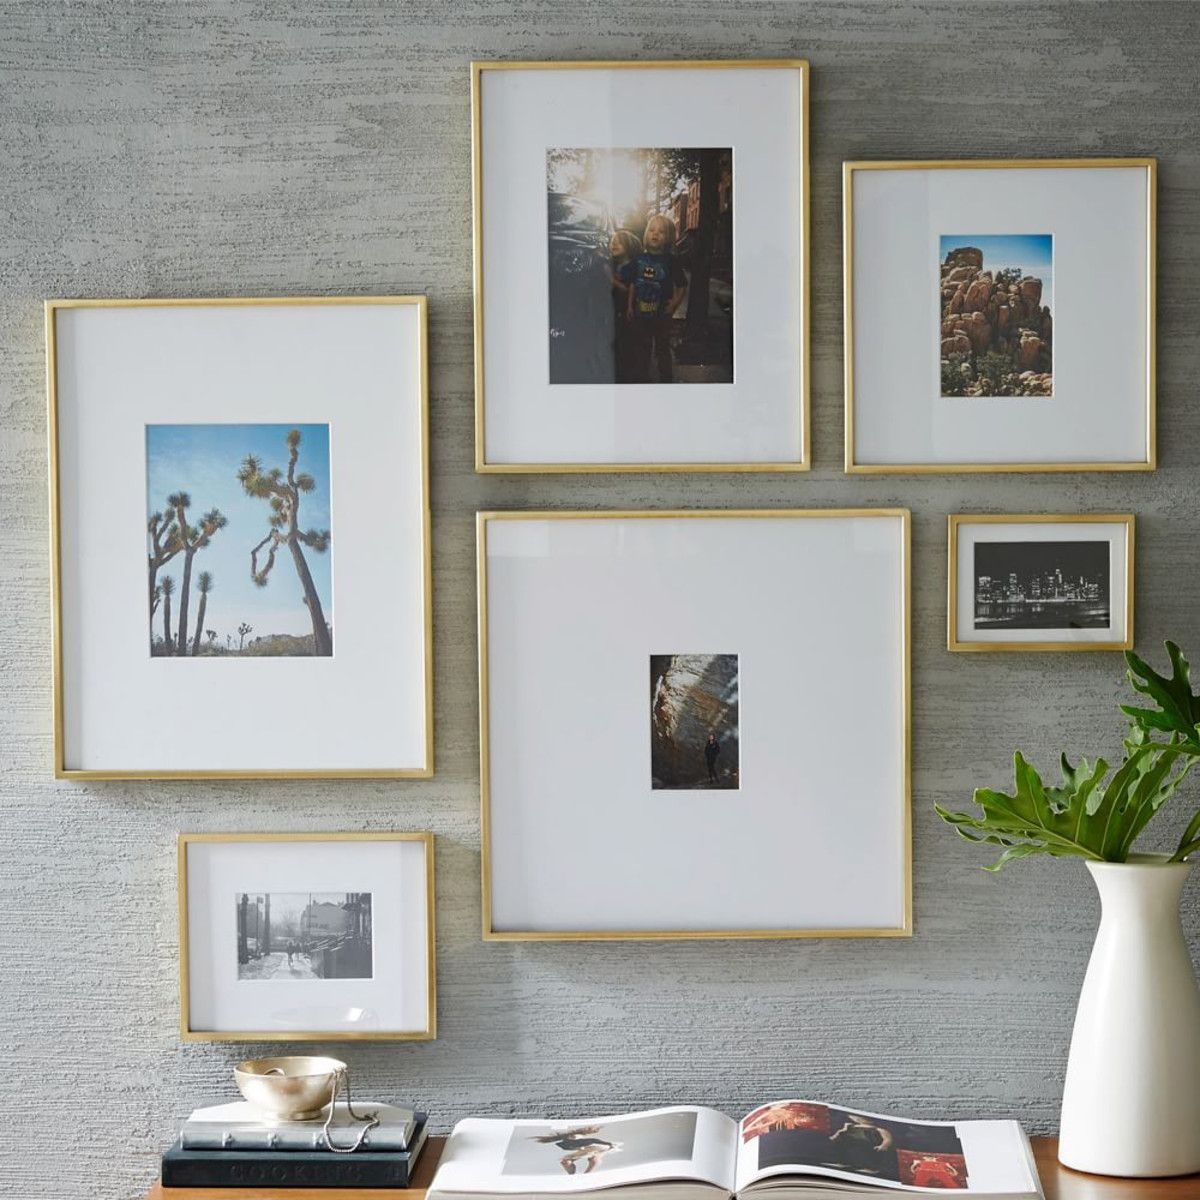 galleryframespolishedbrasswz  beauty is in the home  - gallery frames  polished brass grey walls and gold frames